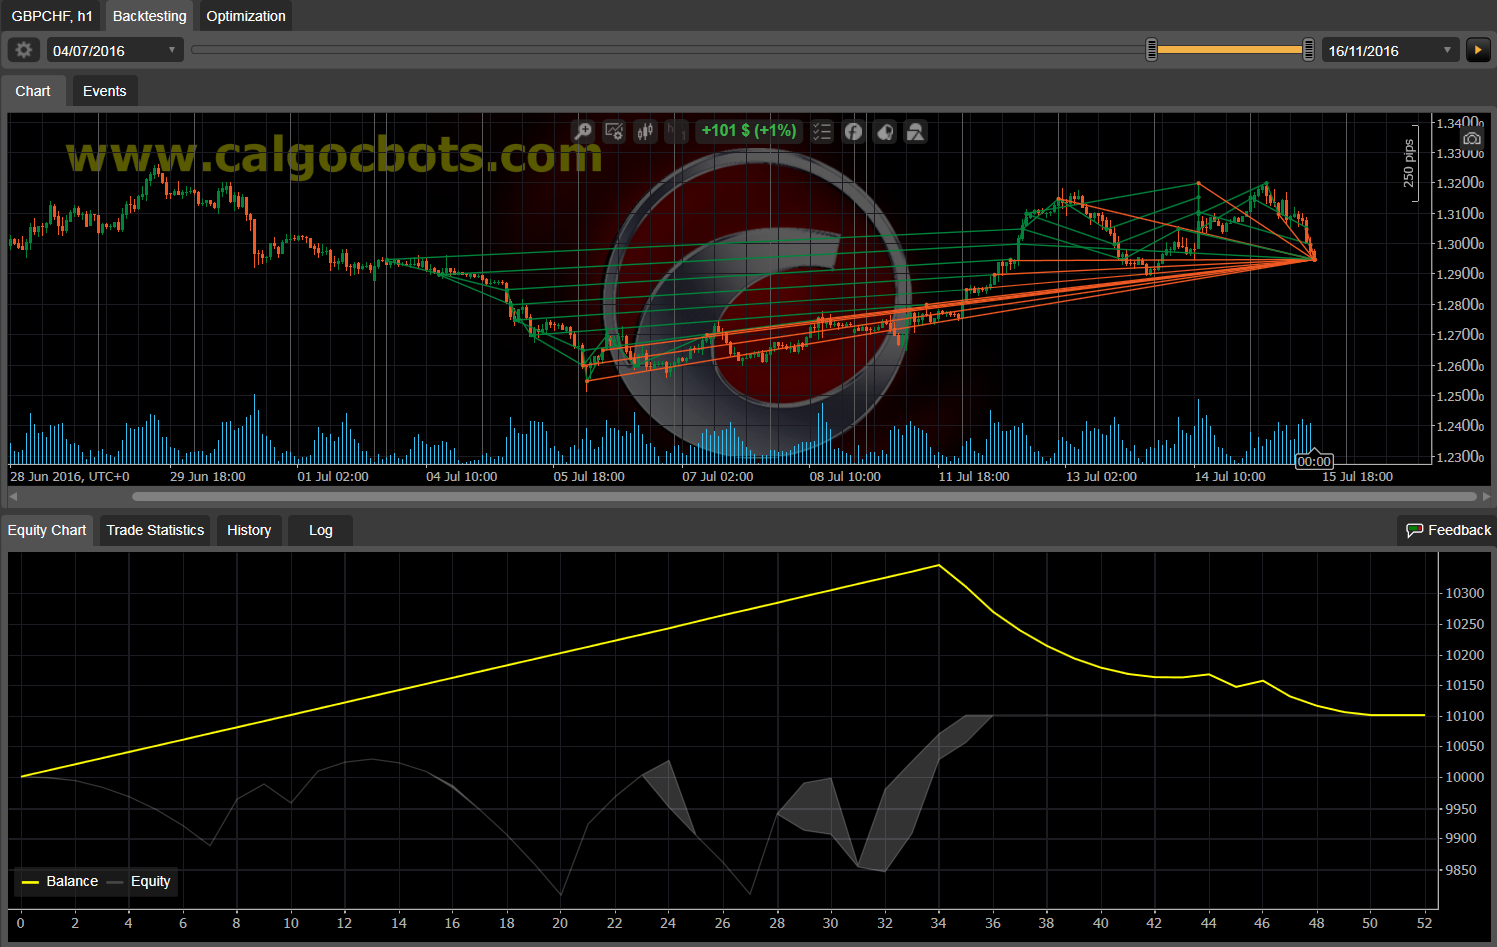 Dual Grid Hedge GBP CHF 1h cAlgo cBots cTrader 100 50 100 - 12